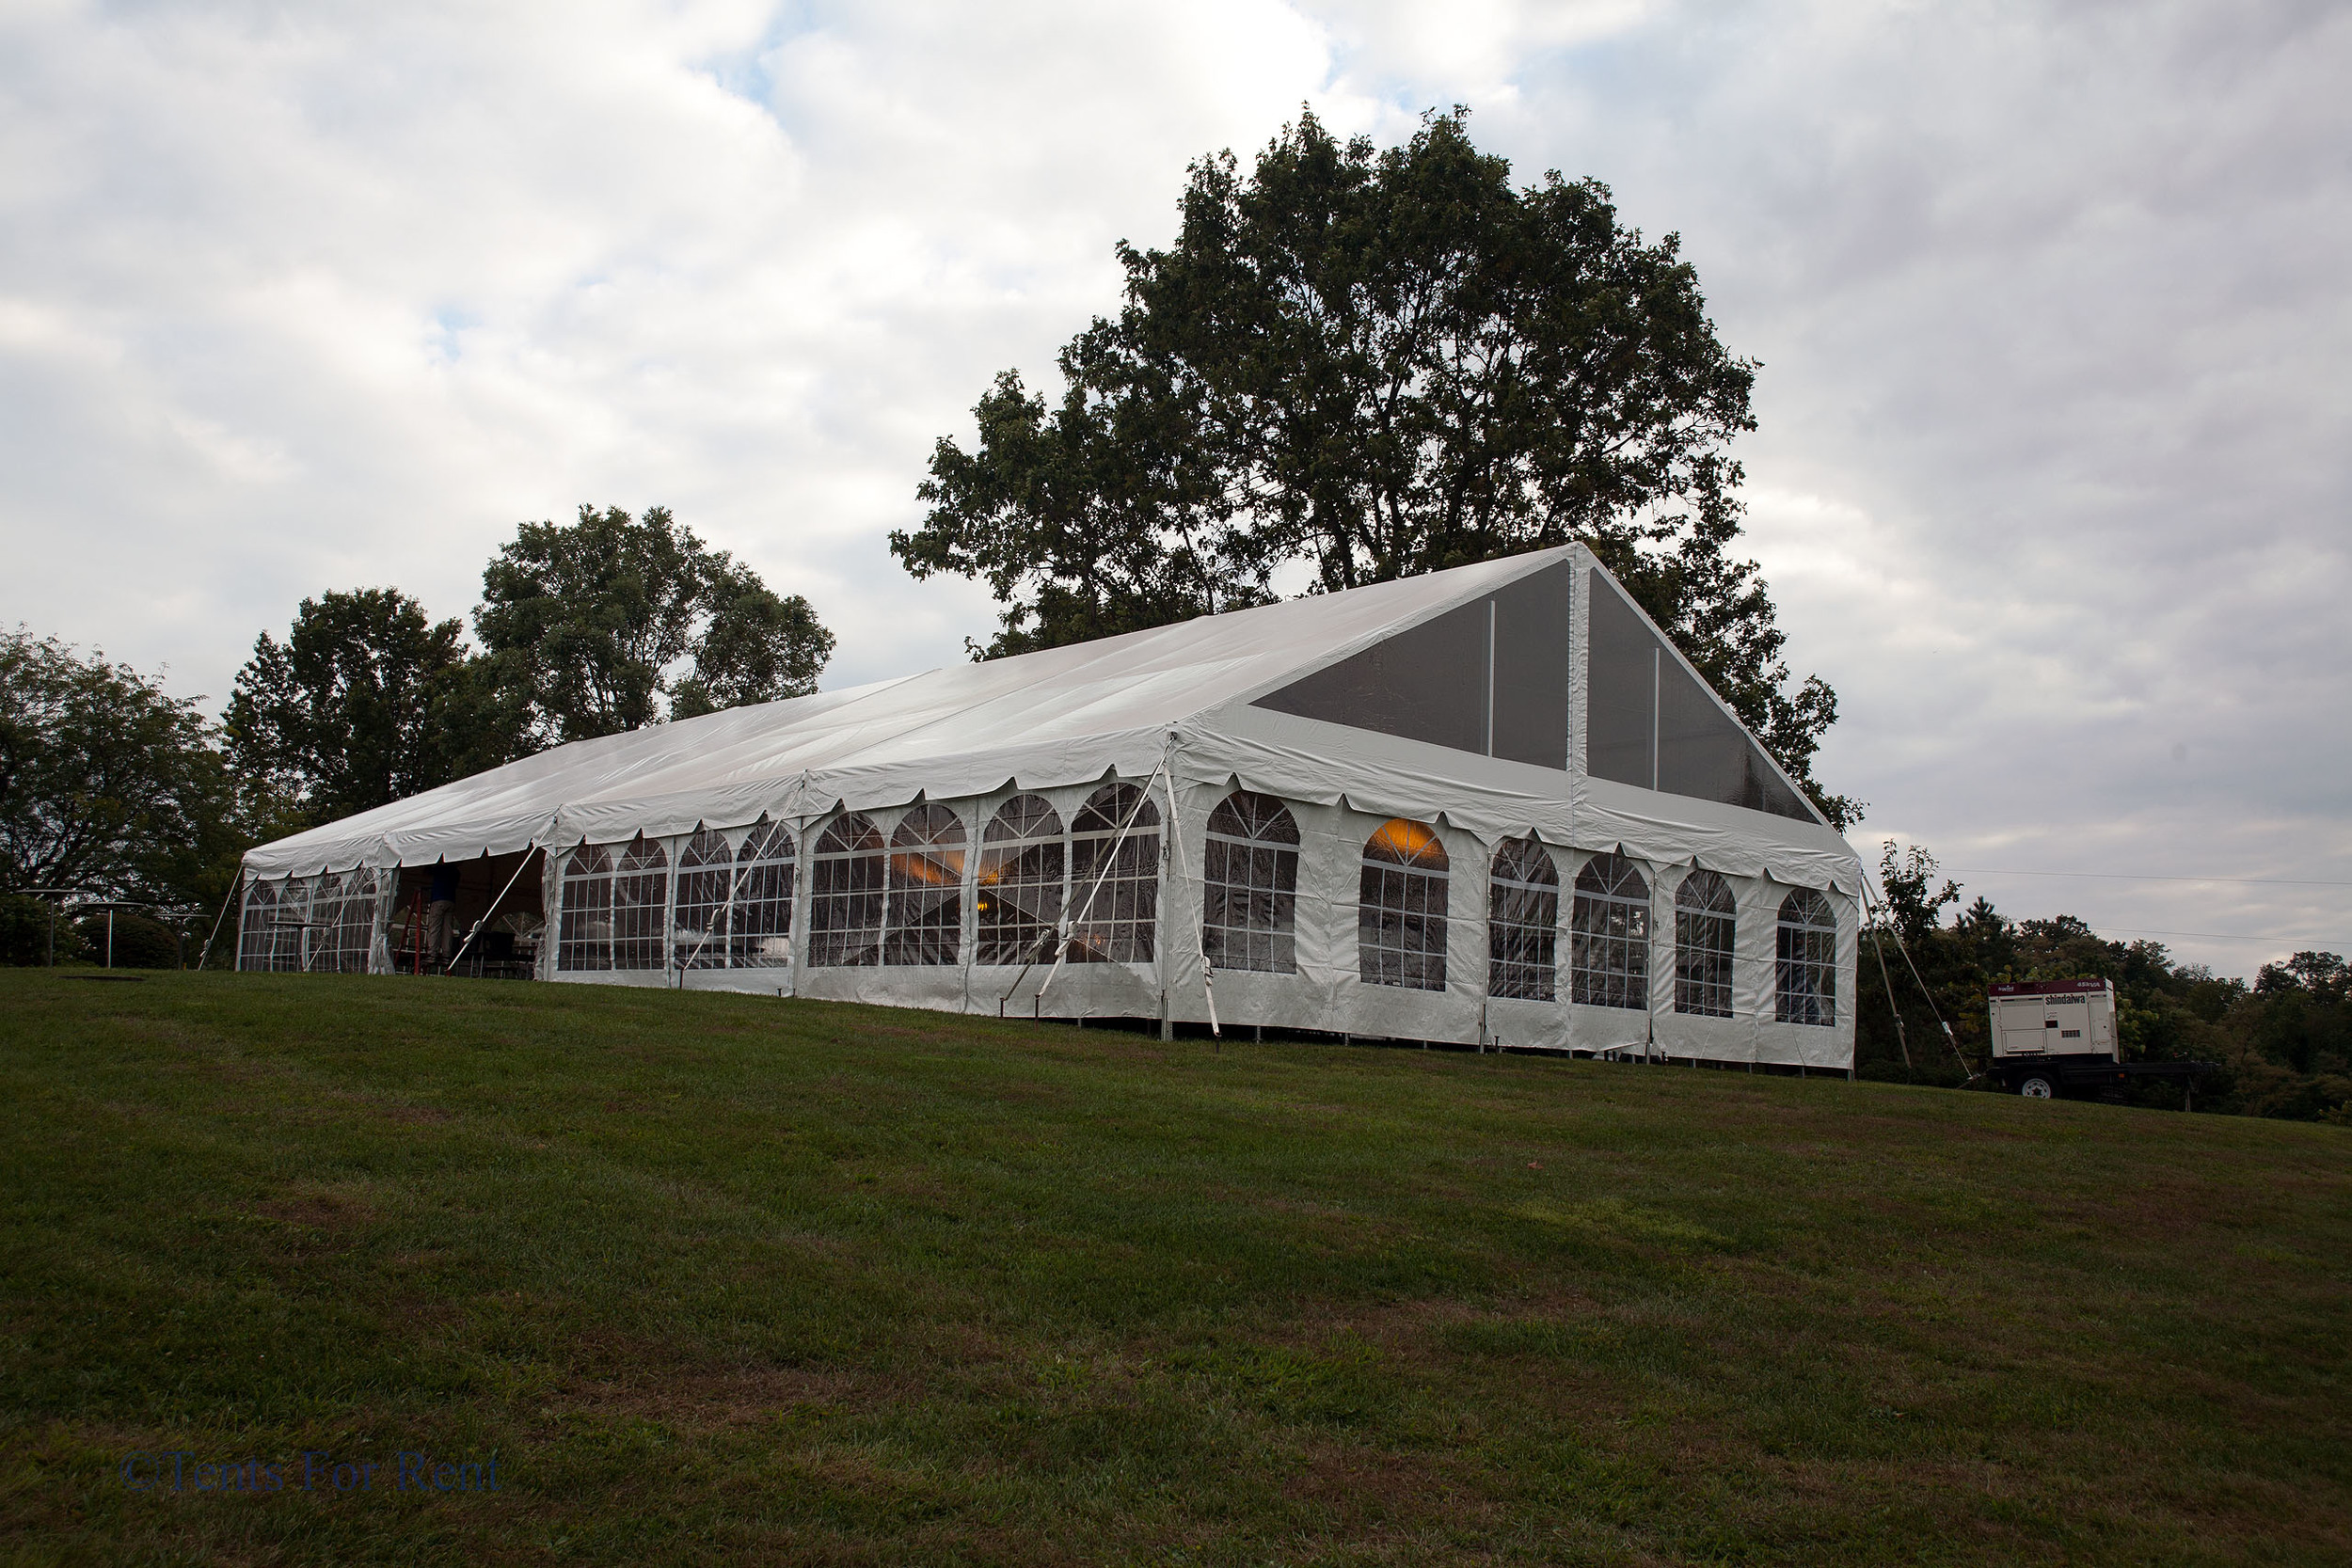 White frame tent with window sidewall